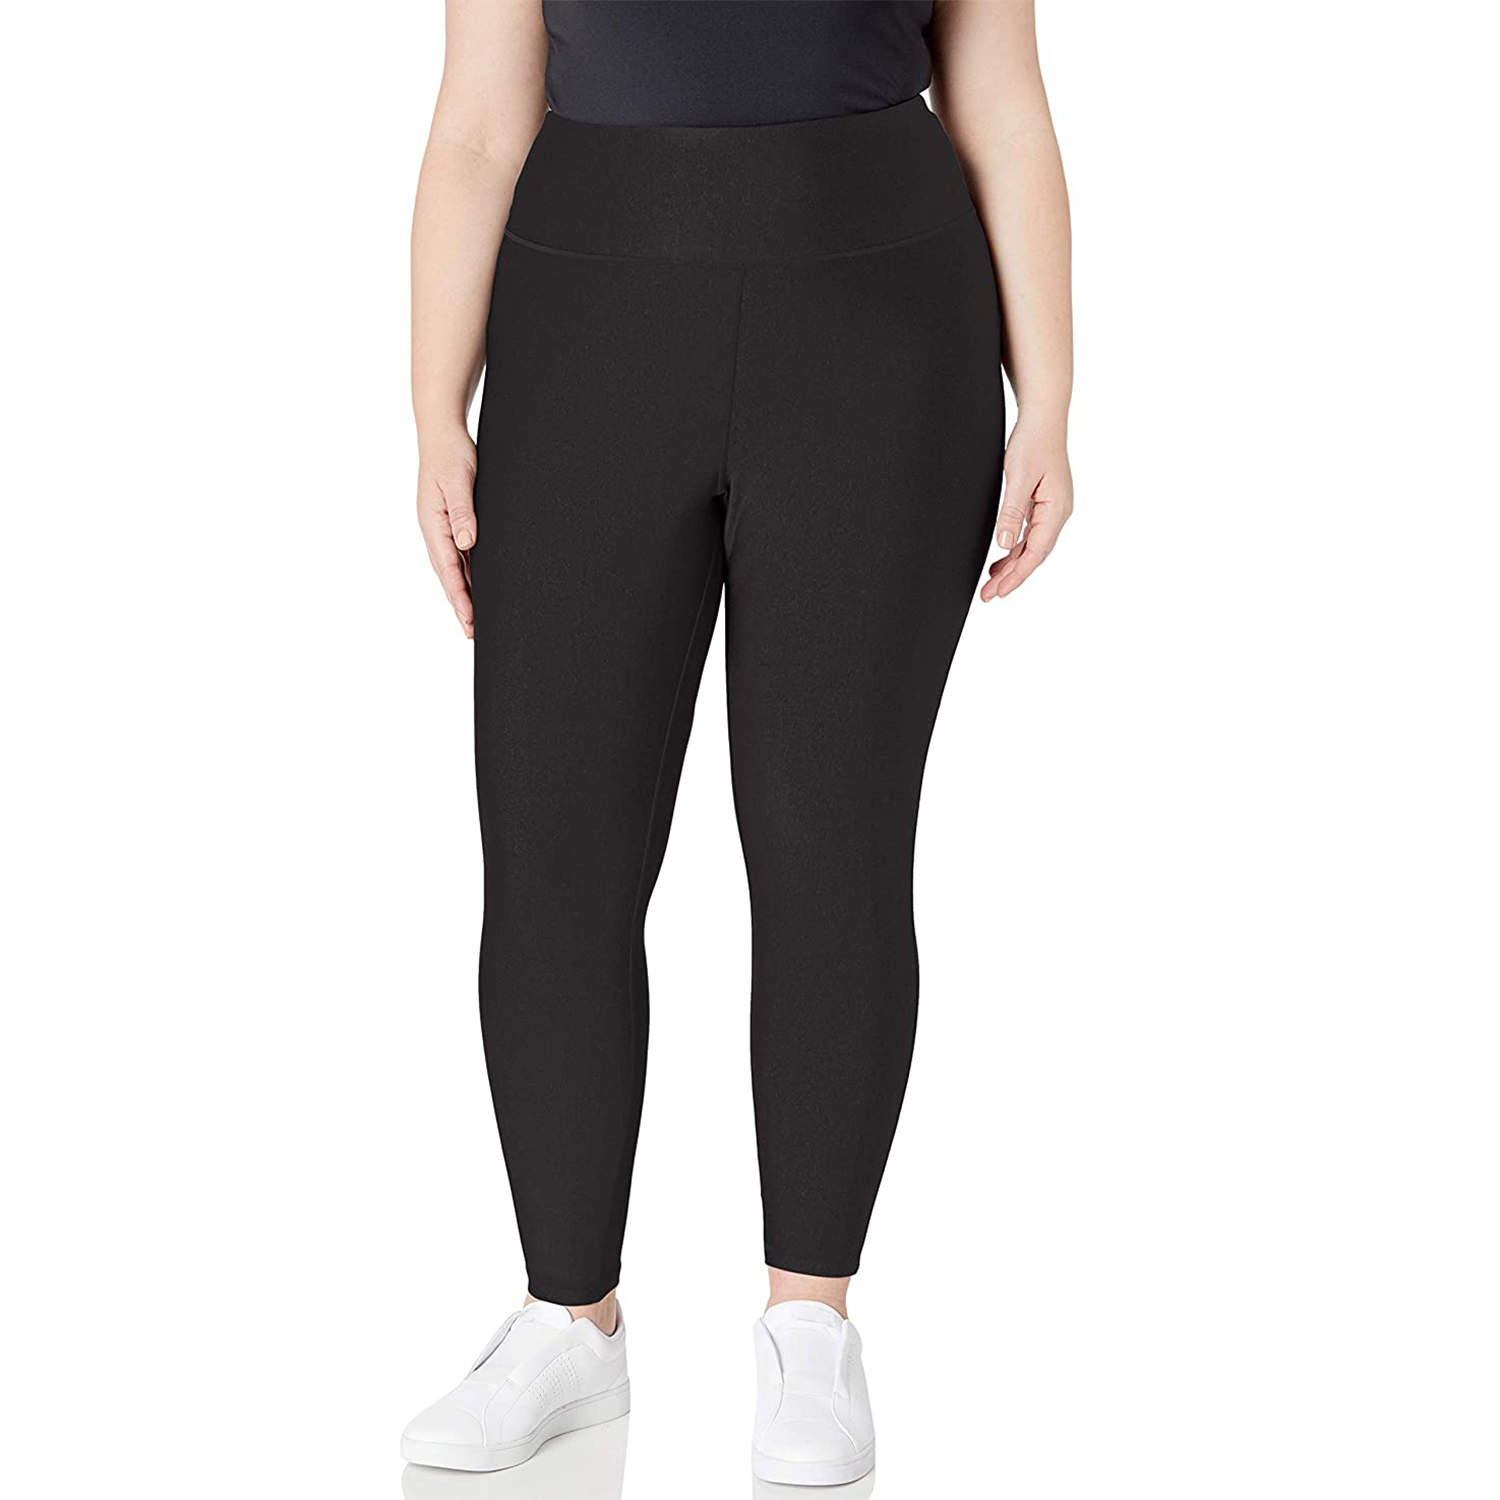 Amazon Essentials Plus Size Performance High-Rise ⅞-Length Legging